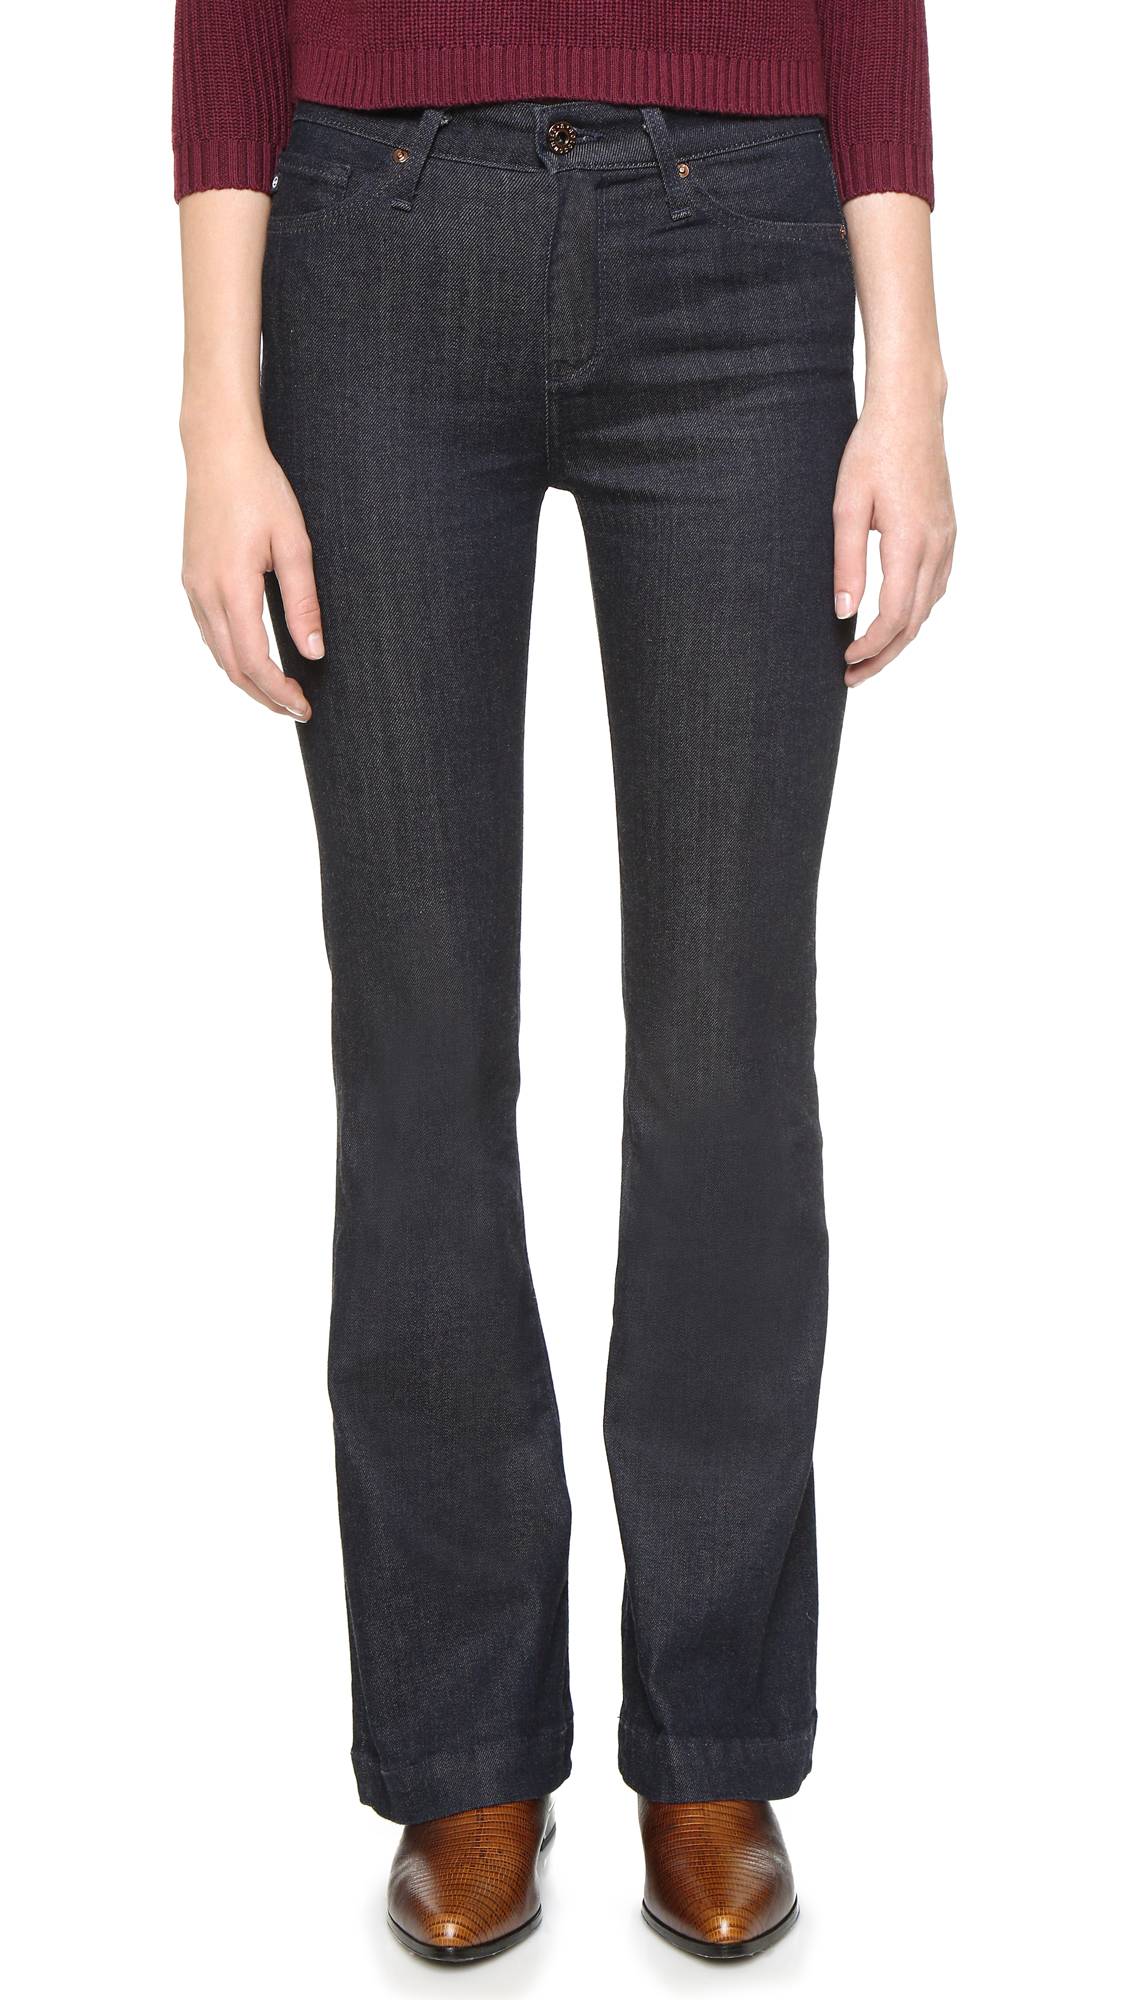 AG Petite Janis Flare Jeans | 15% off first app purchase with code ...